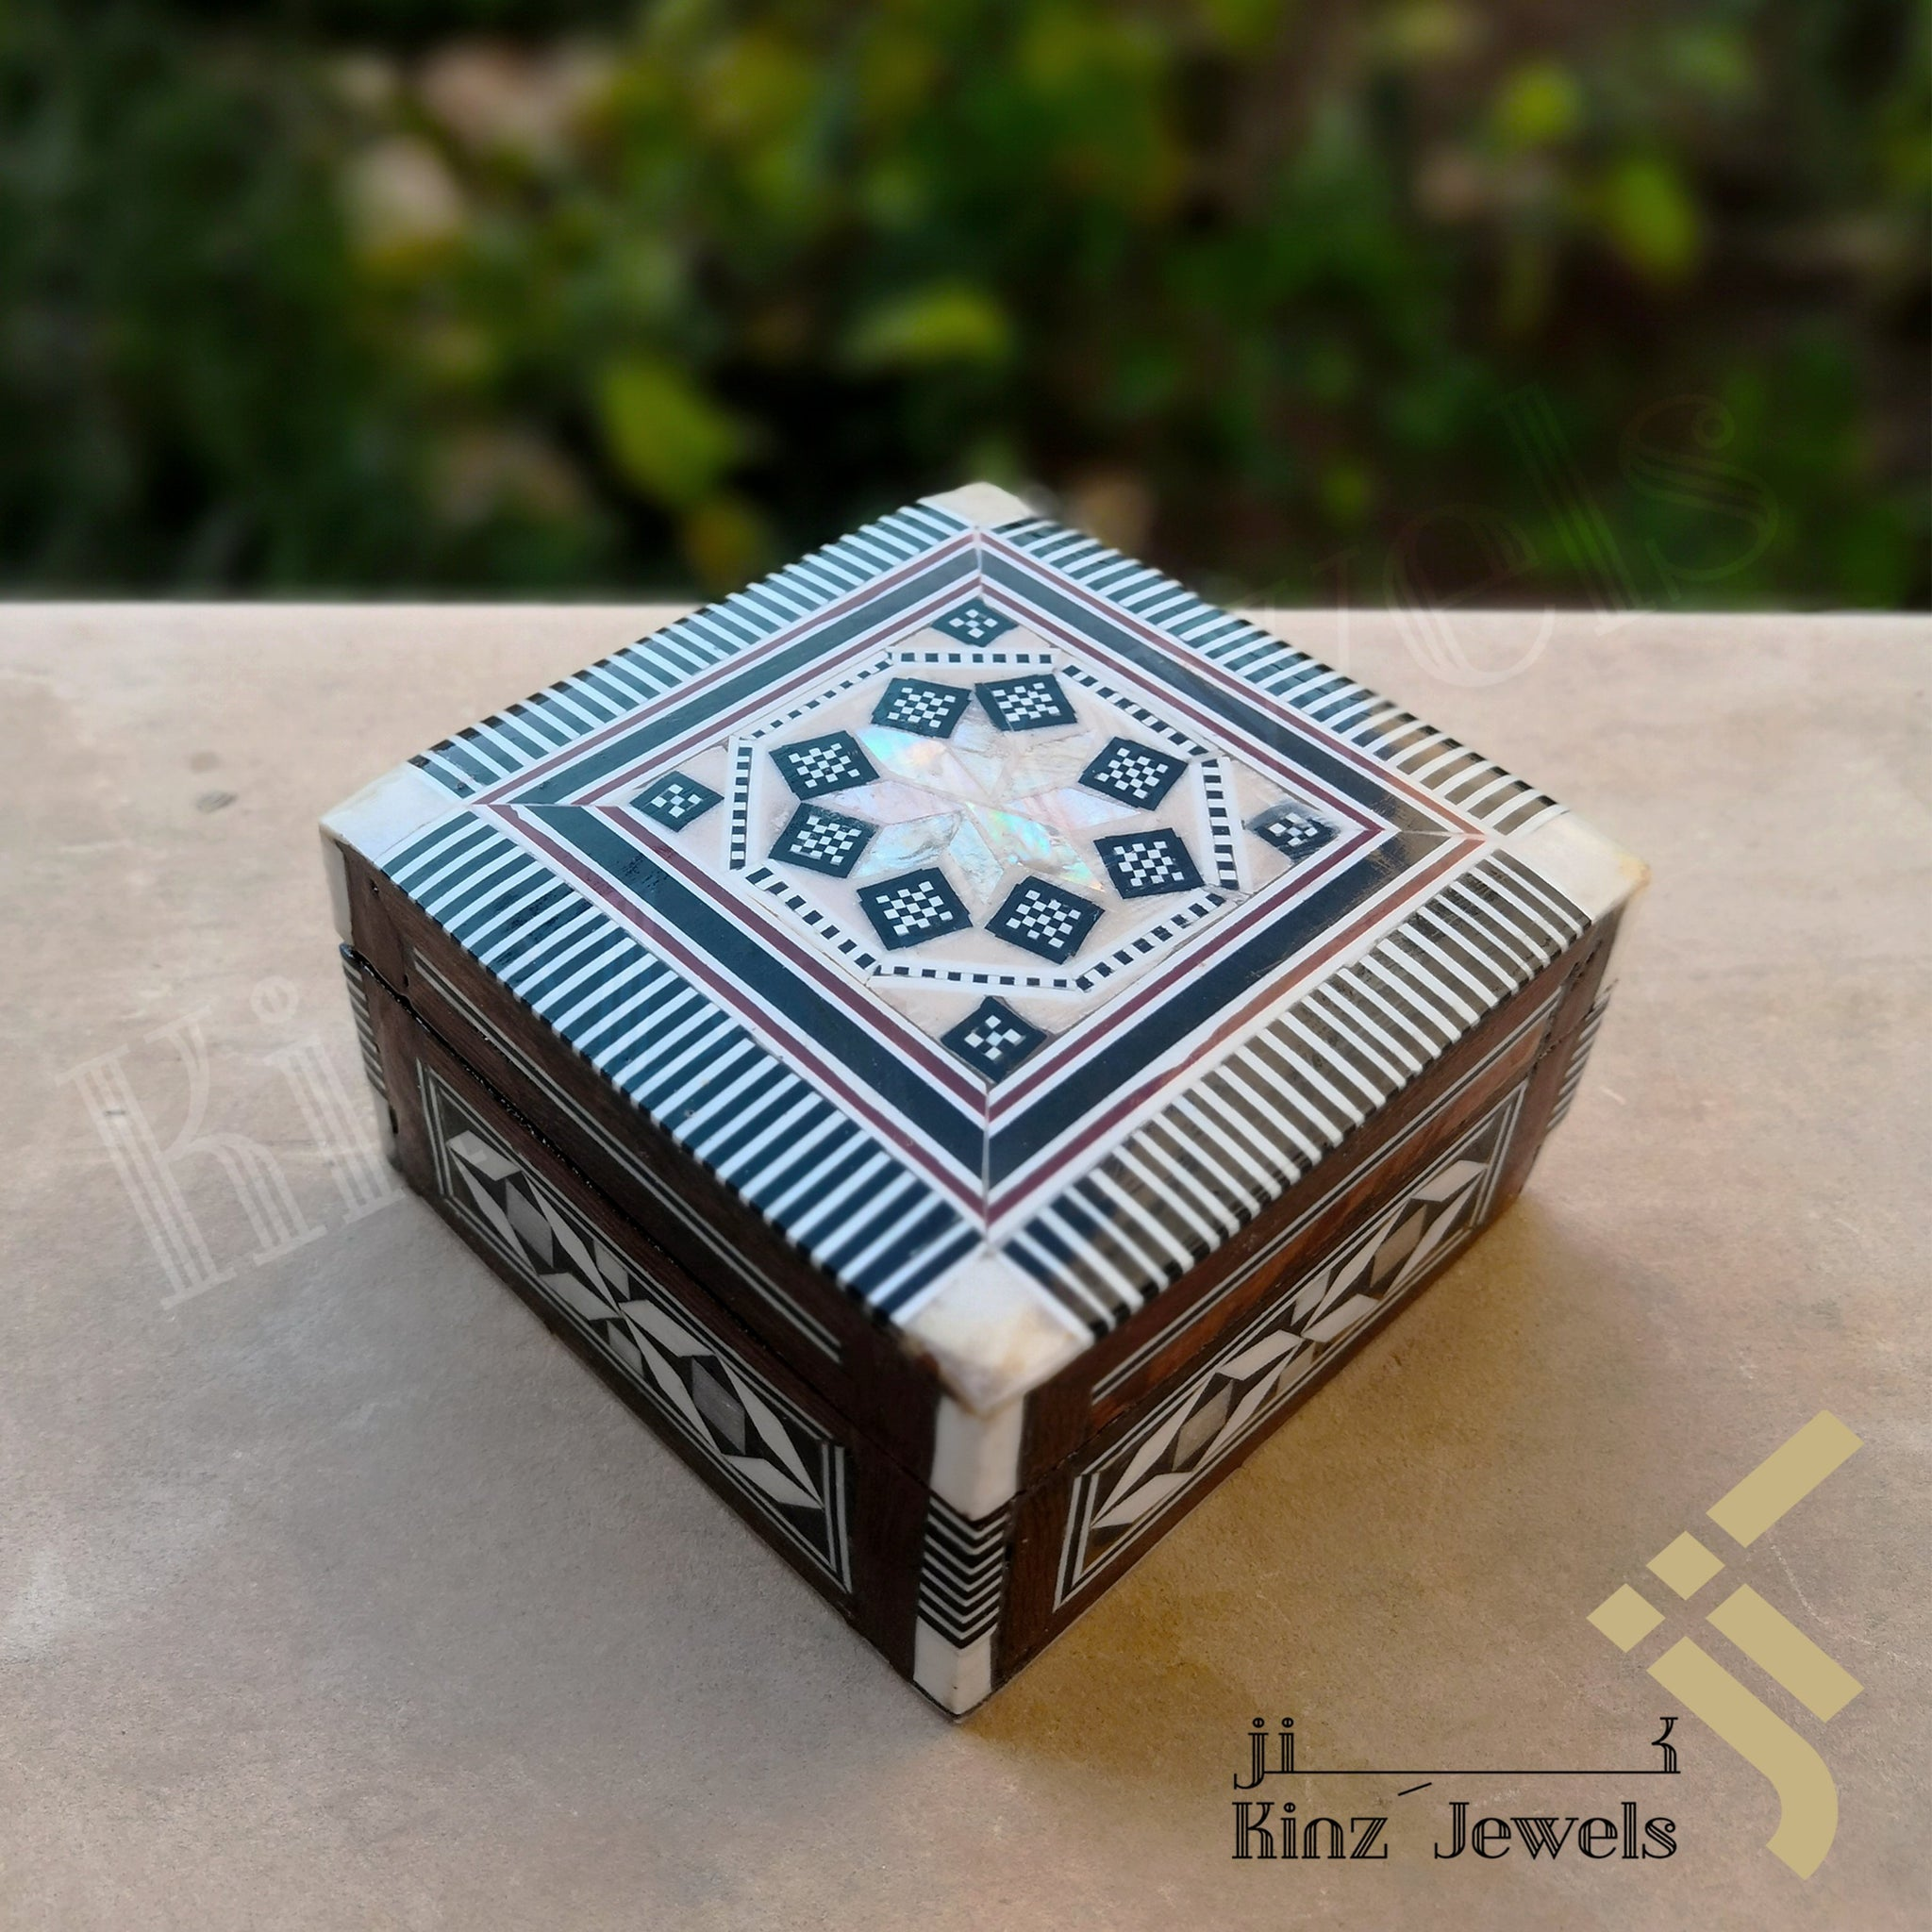 kinzjewels - Handcrafted Arabsic Mosaics Mother Of Pearl Shell Box